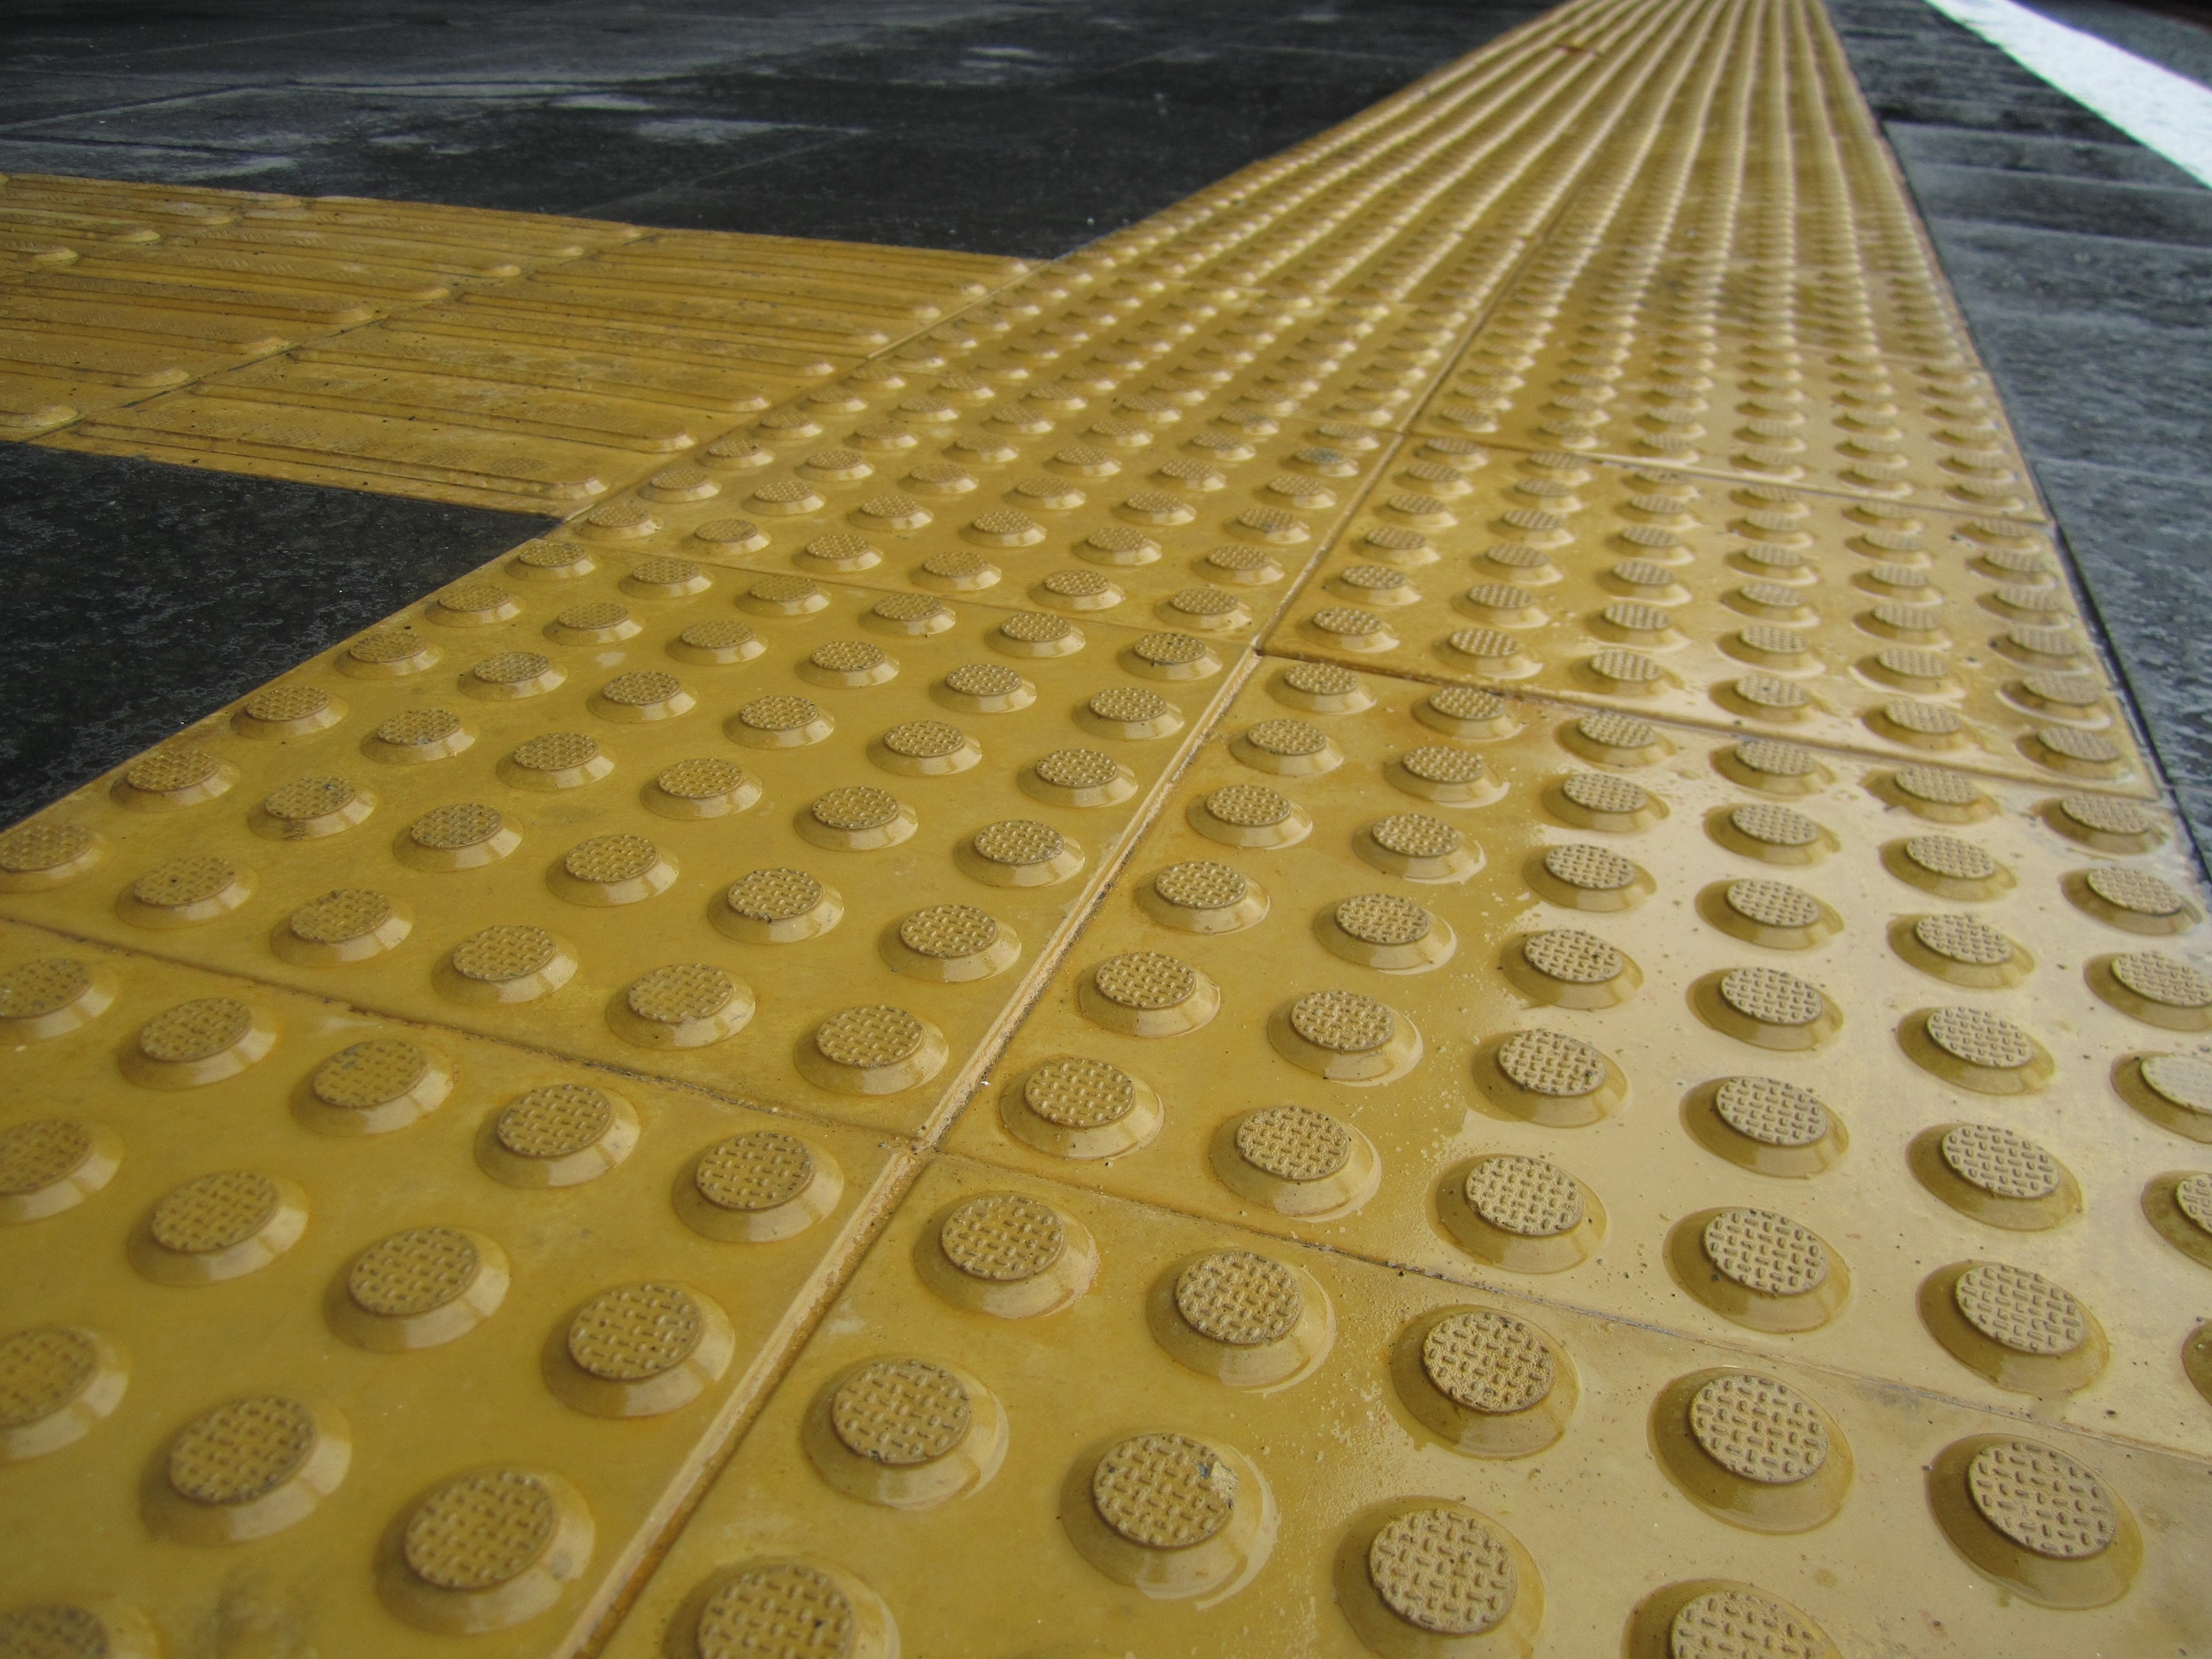 Tactile coloured hazard warning pavers total tactilez nz tactile concrete pavers hazard warning type b dailygadgetfo Image collections